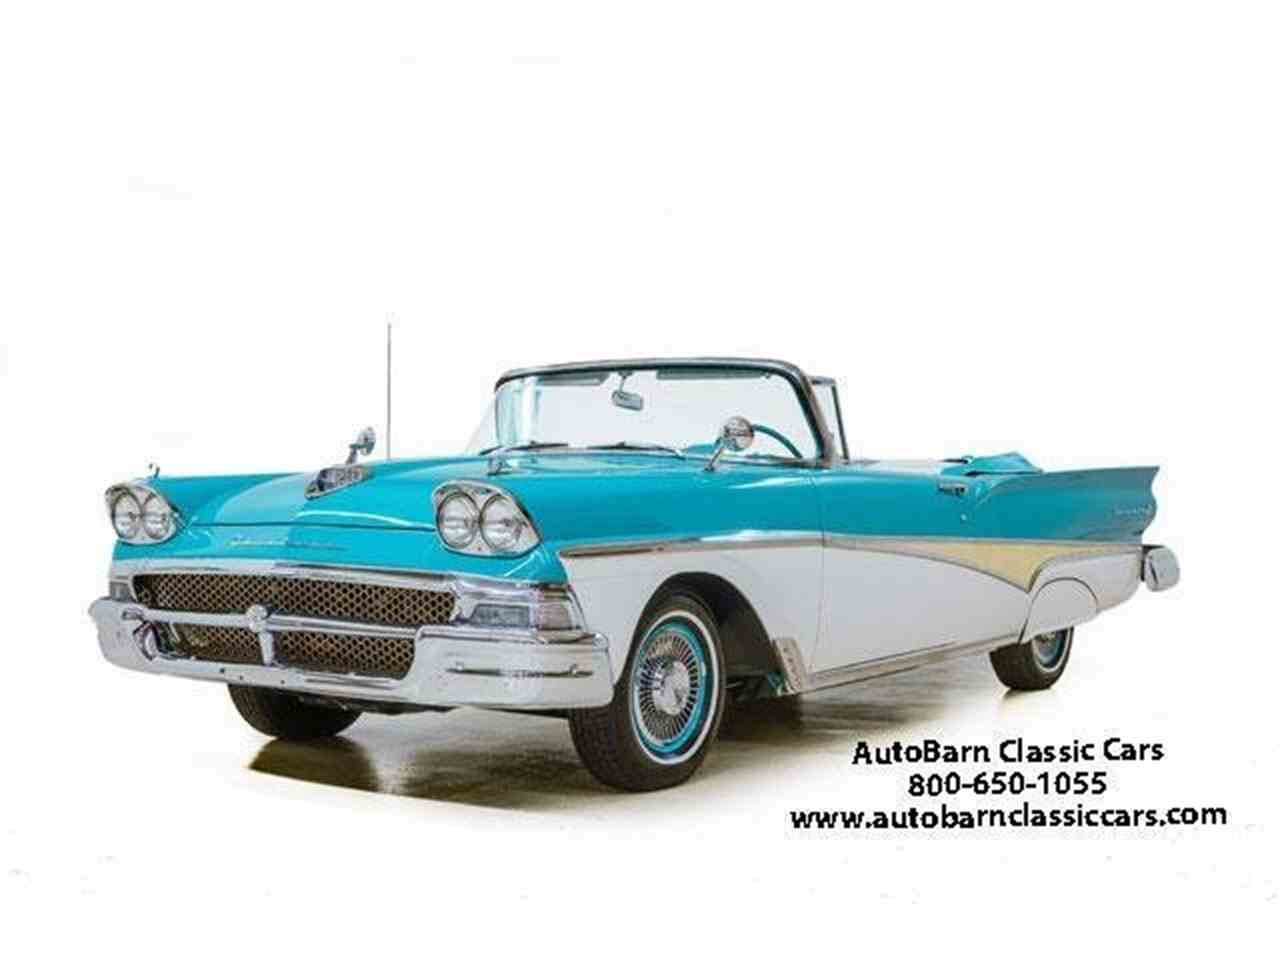 Classic Ford Fairlane For Sale On Classiccars Com Available